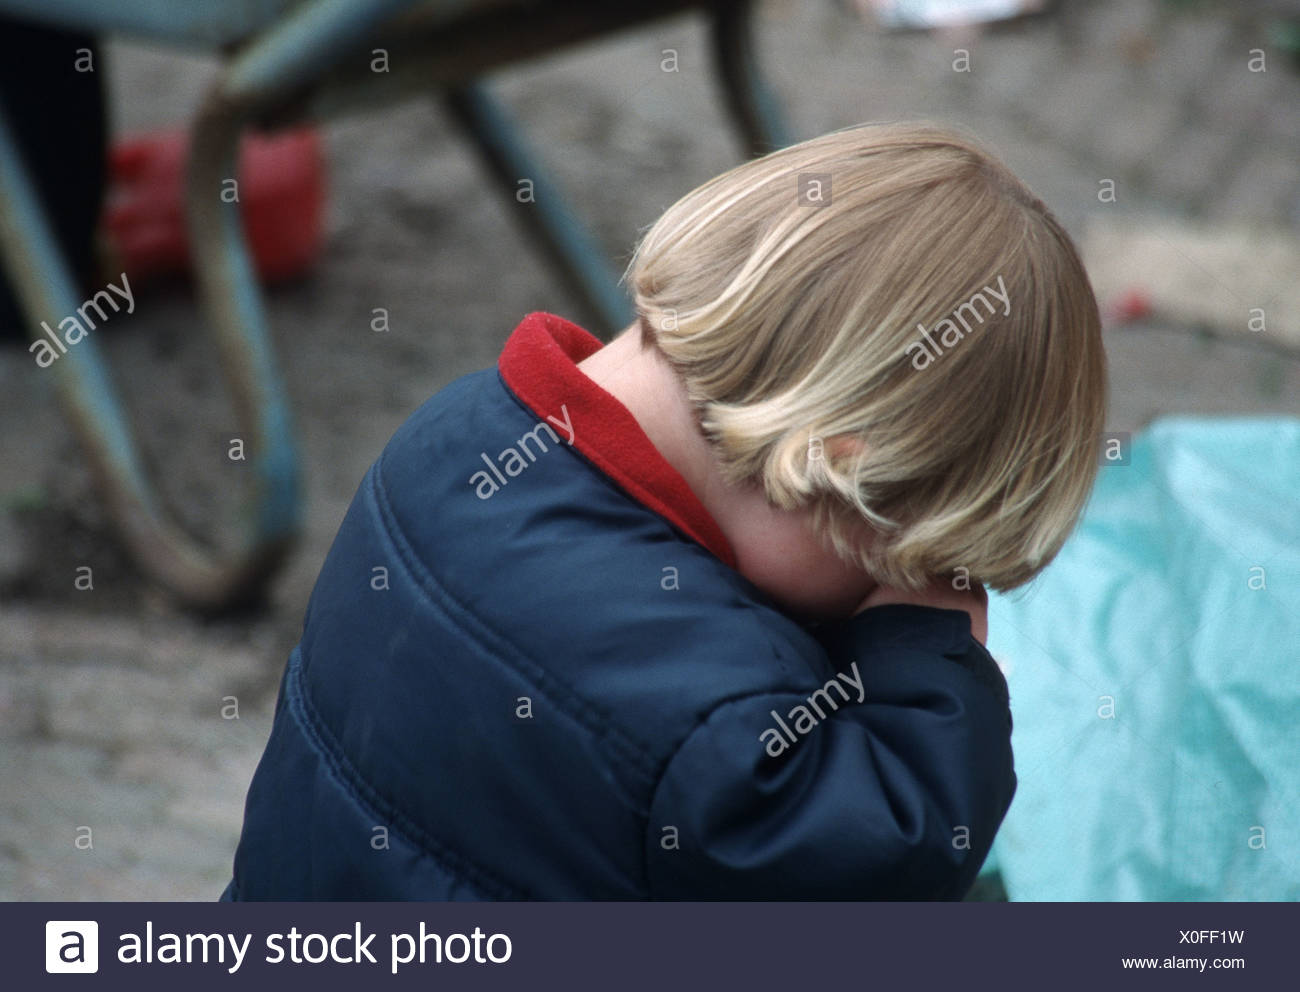 Toddler having a tantrum outside and hiding face and weaning - Stock Image